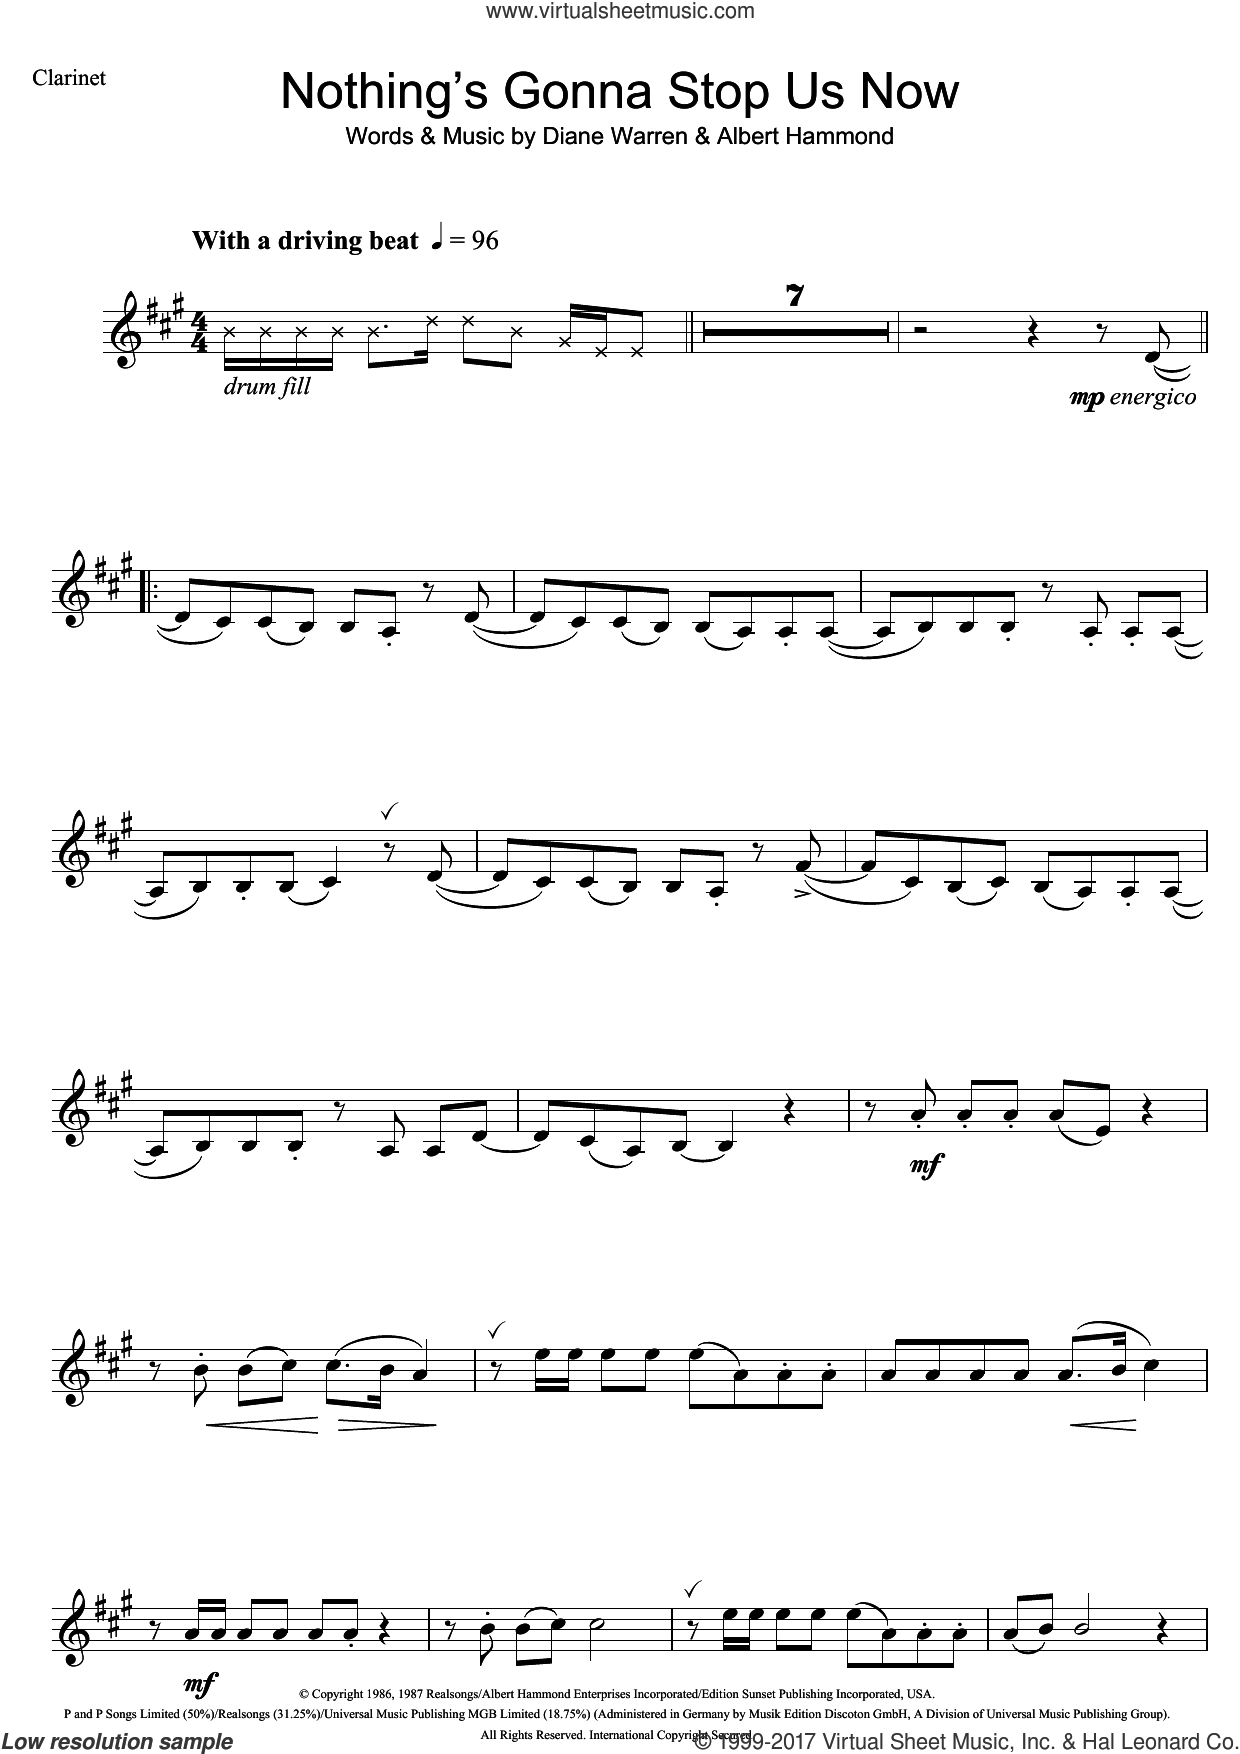 Nothing's Gonna Stop Us Now sheet music for clarinet solo by Starship, Albert Hammond and Diane Warren, intermediate skill level